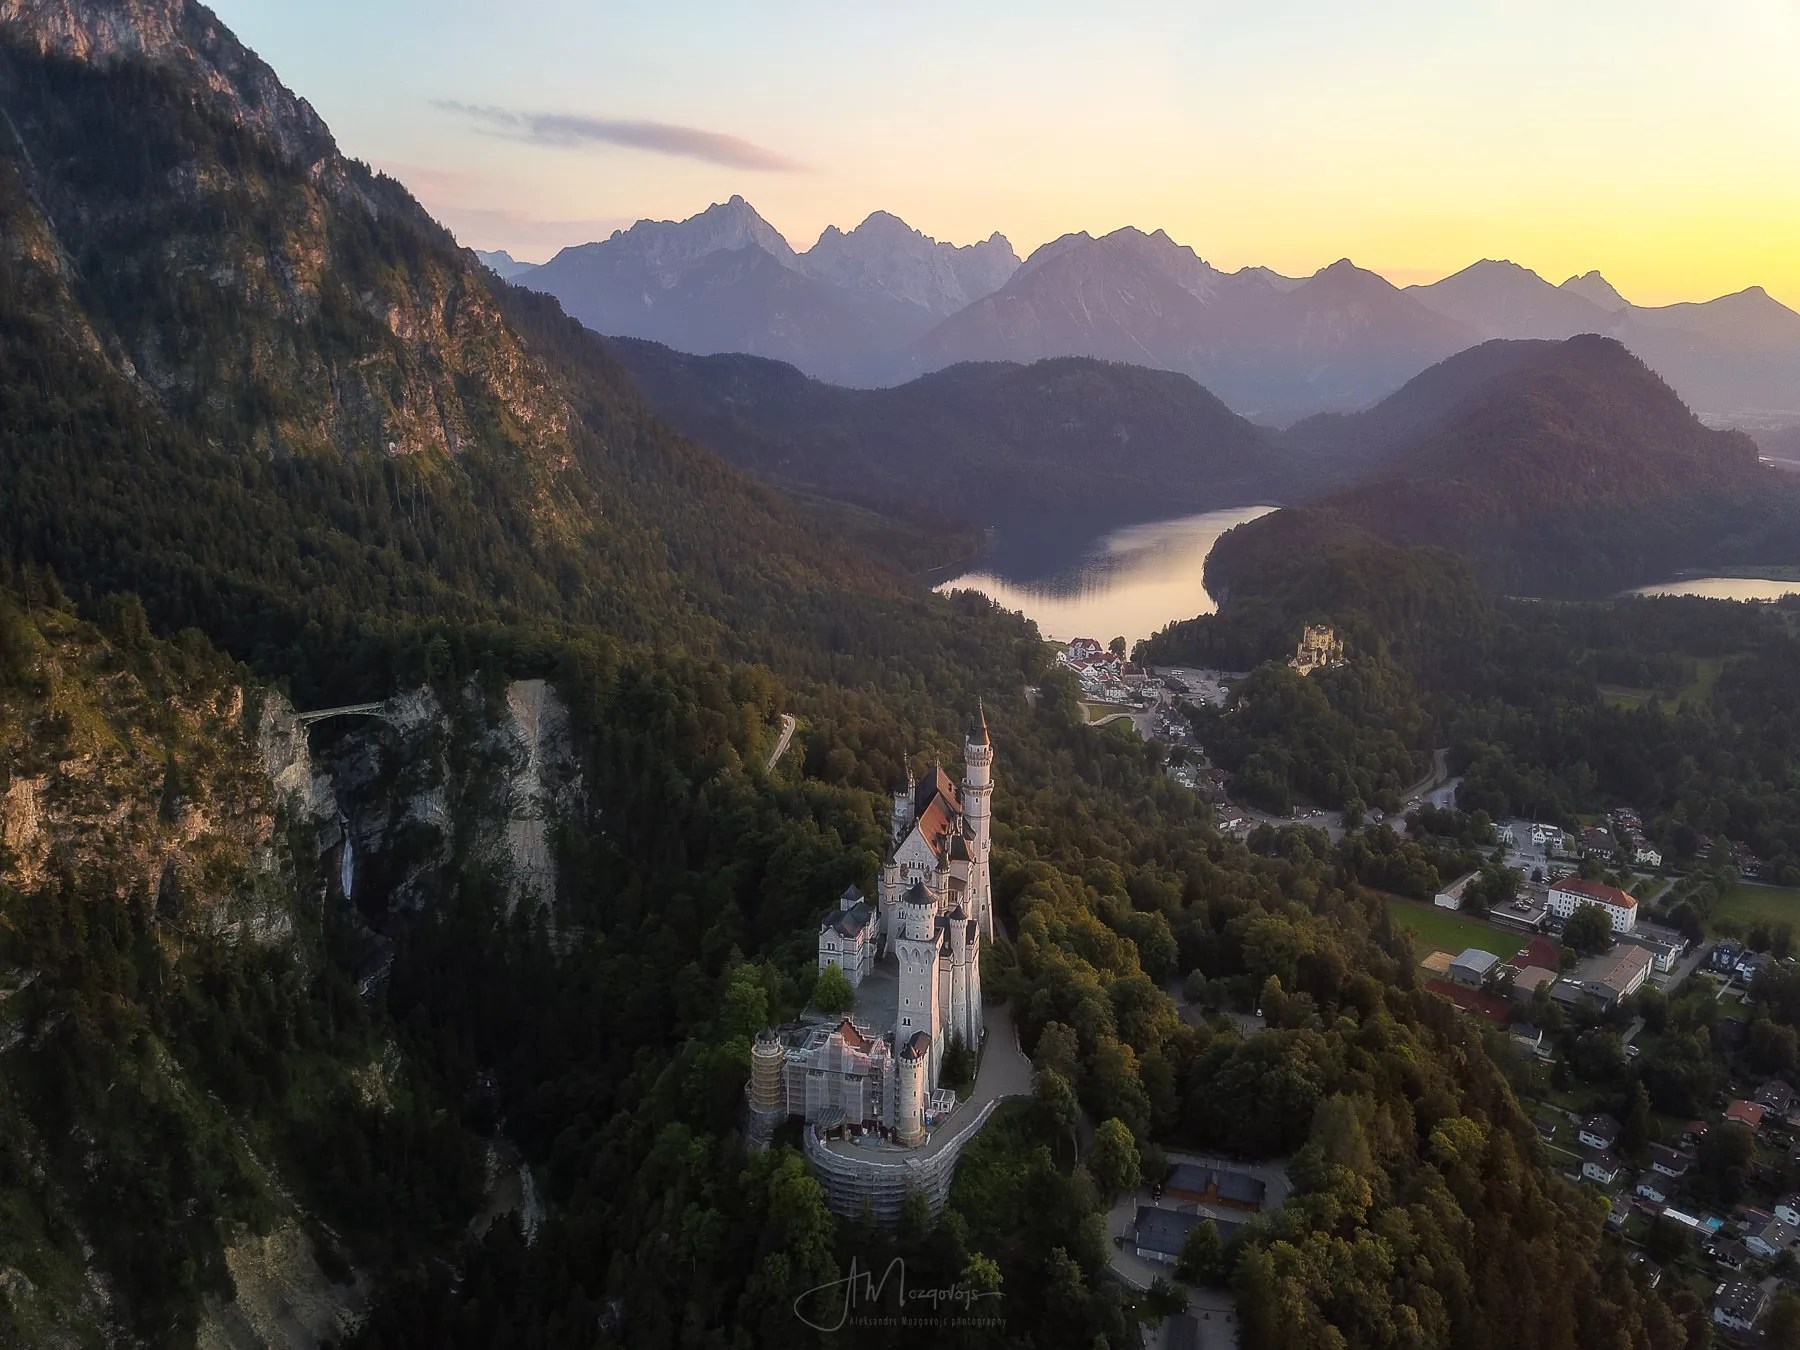 Castle Neuschwanstein and surrounding landscape